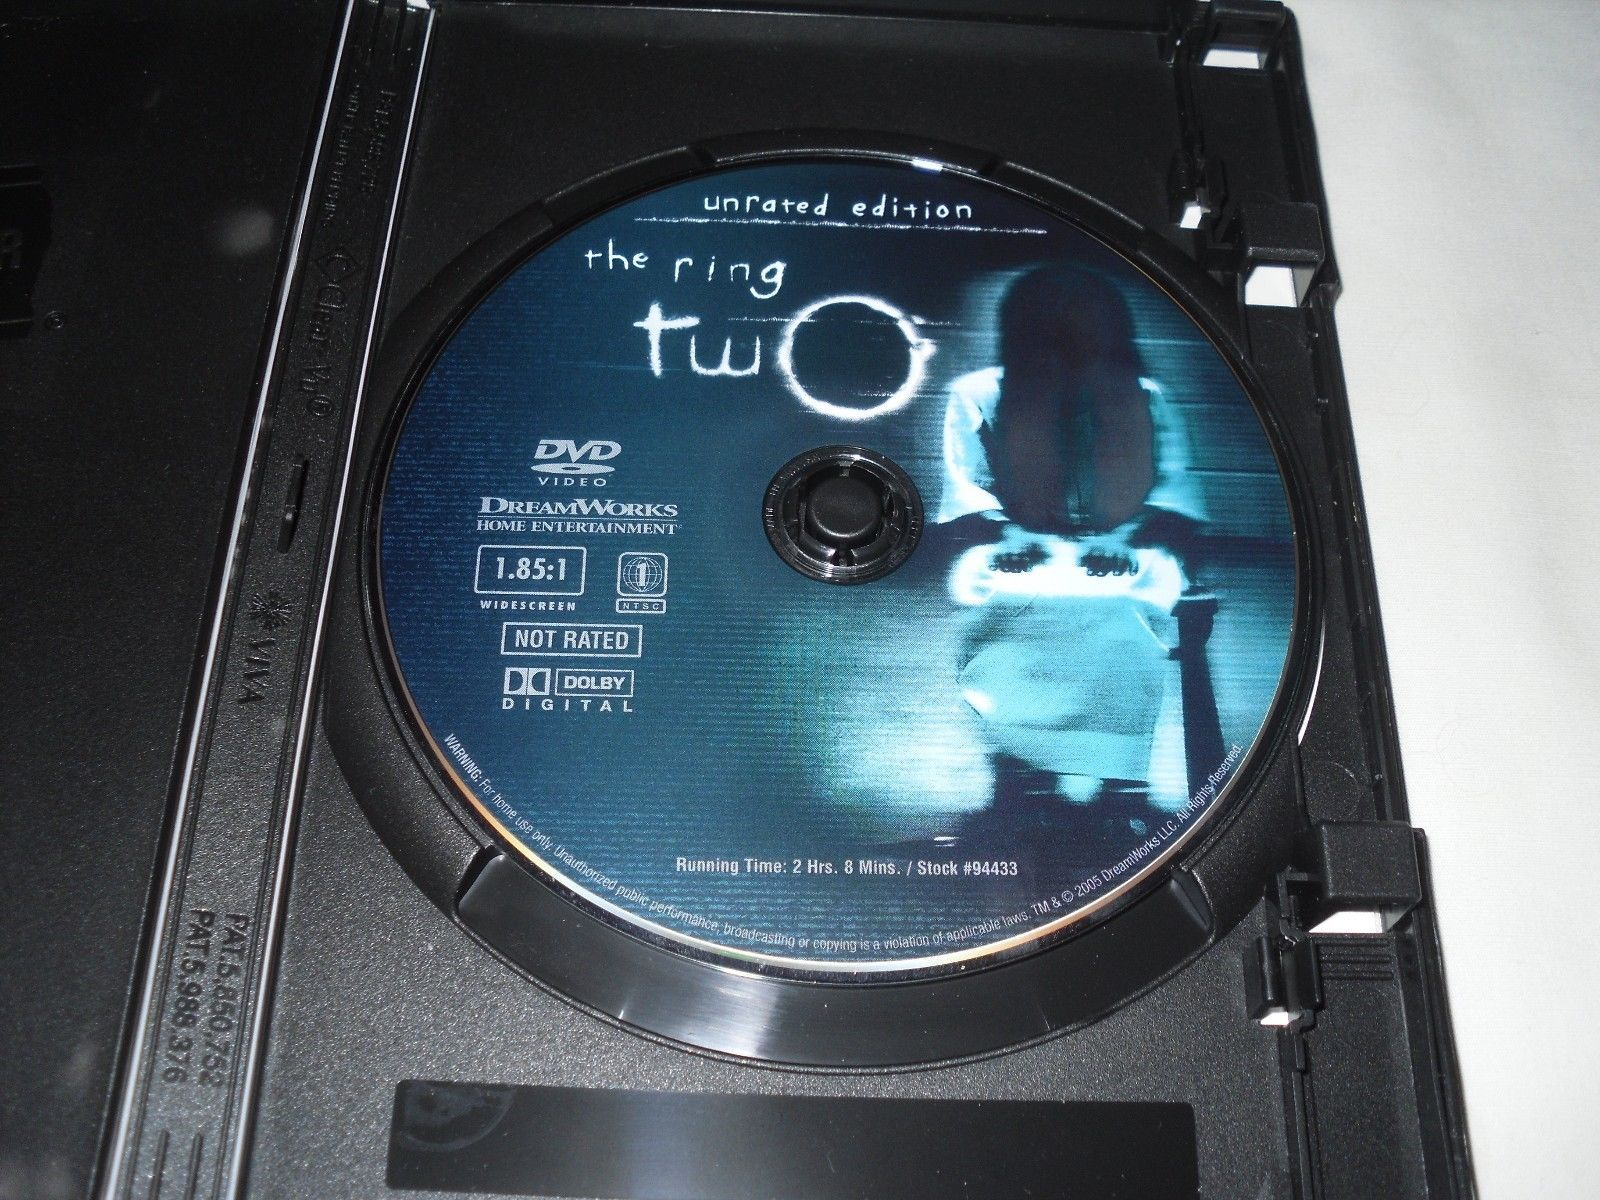 The Ring Two (DVD, 2005, UNRATED - WIDESCREEN) Naomi Watts, David Dorfman